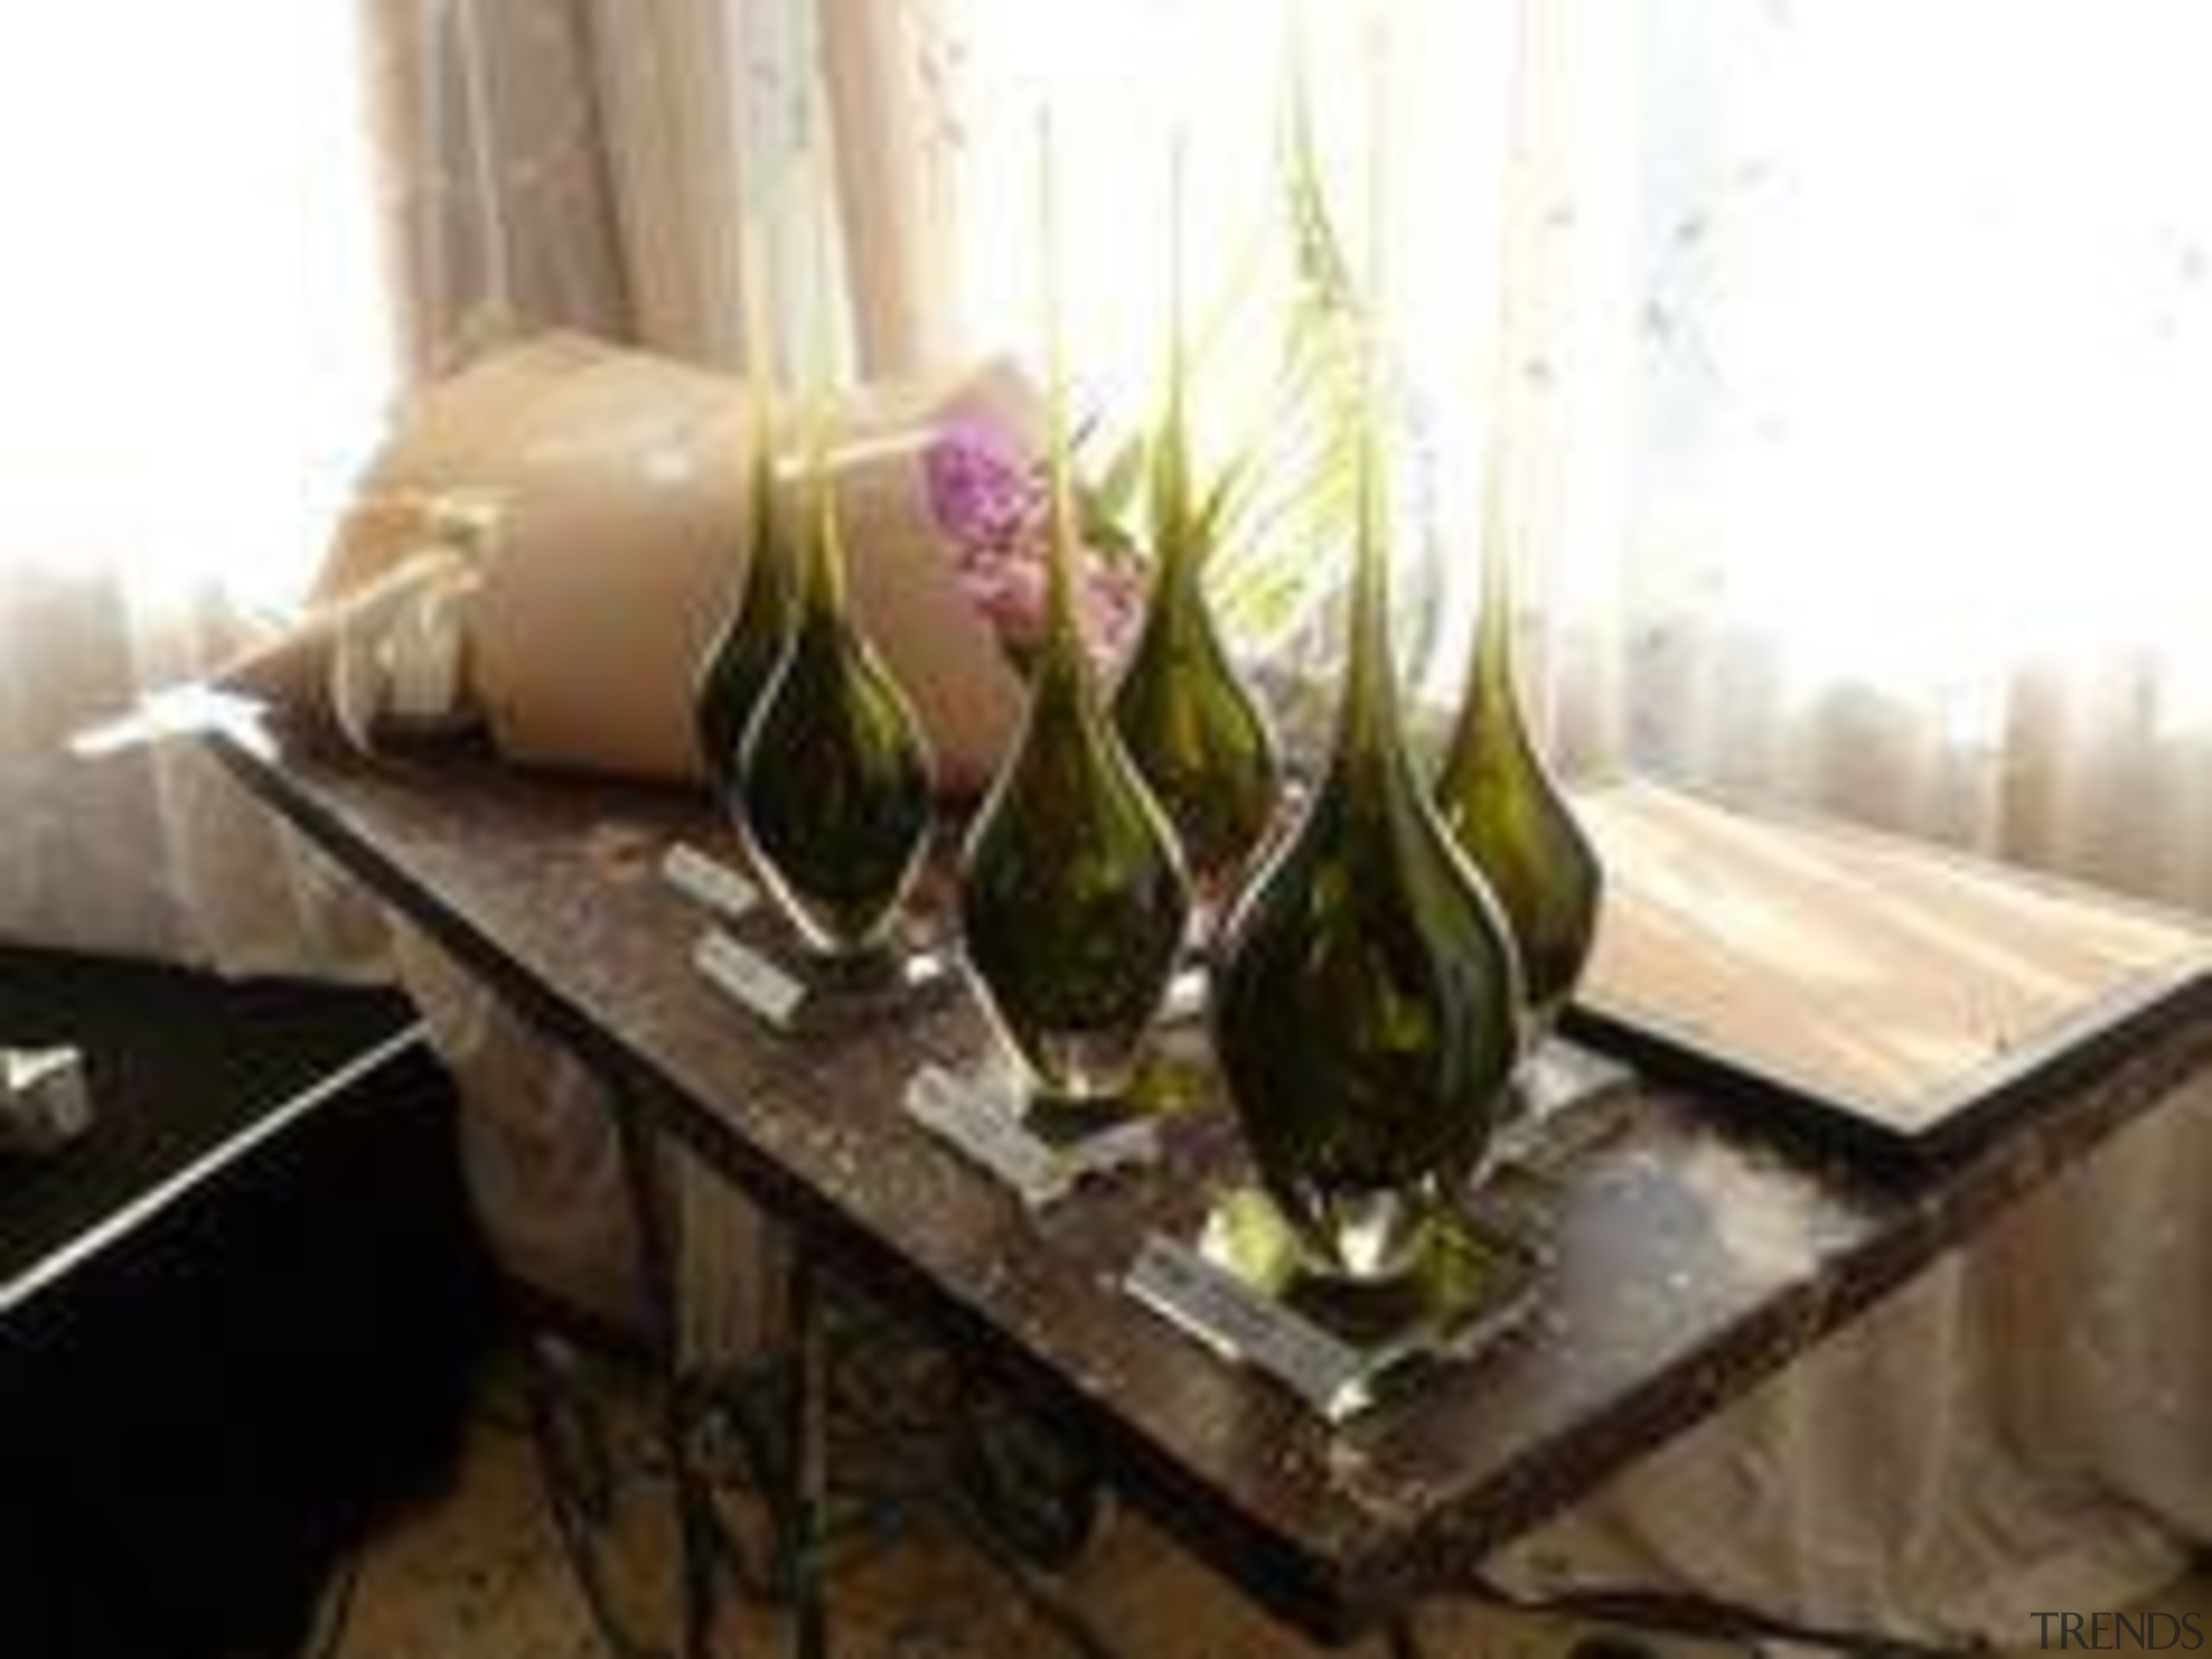 Trophies by glass artist Katie Brown and flowers floristry, furniture, glass, interior design, plant, property, stemware, still life, table, wine glass, white, black